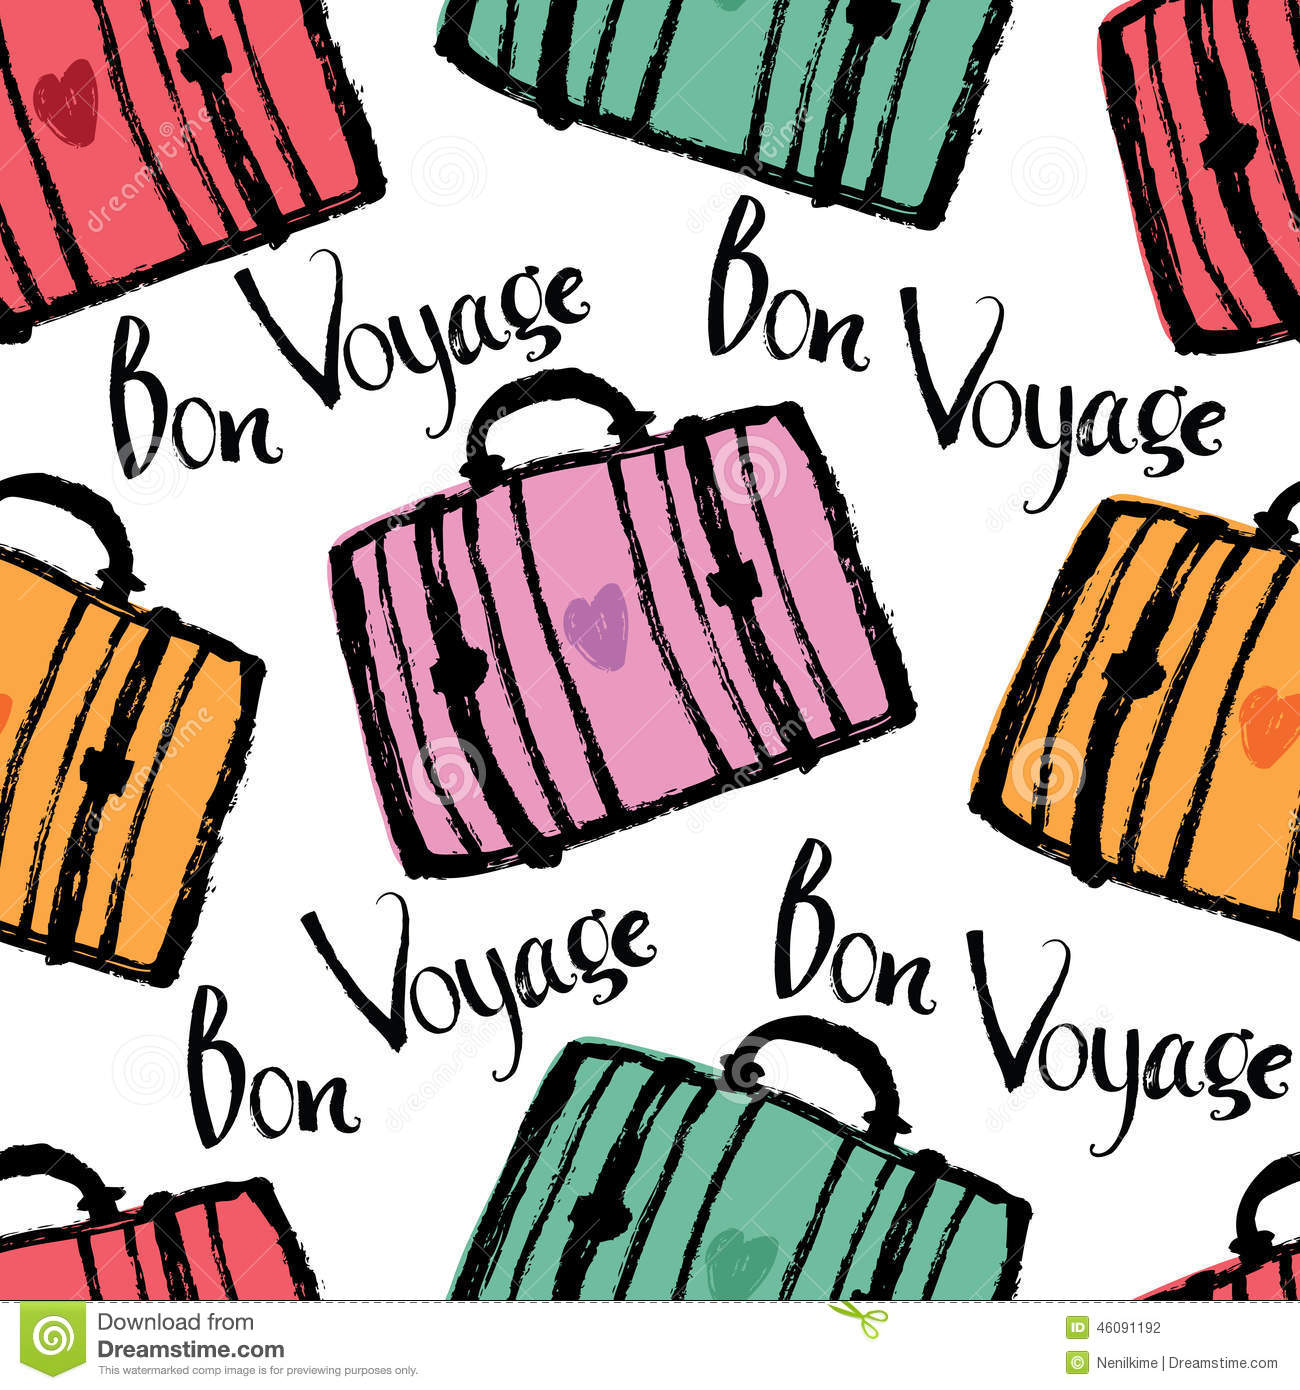 bon voyage background with colorful suitcases stock vector Print Your Own Luggage Tags Print Your Own Luggage Tags